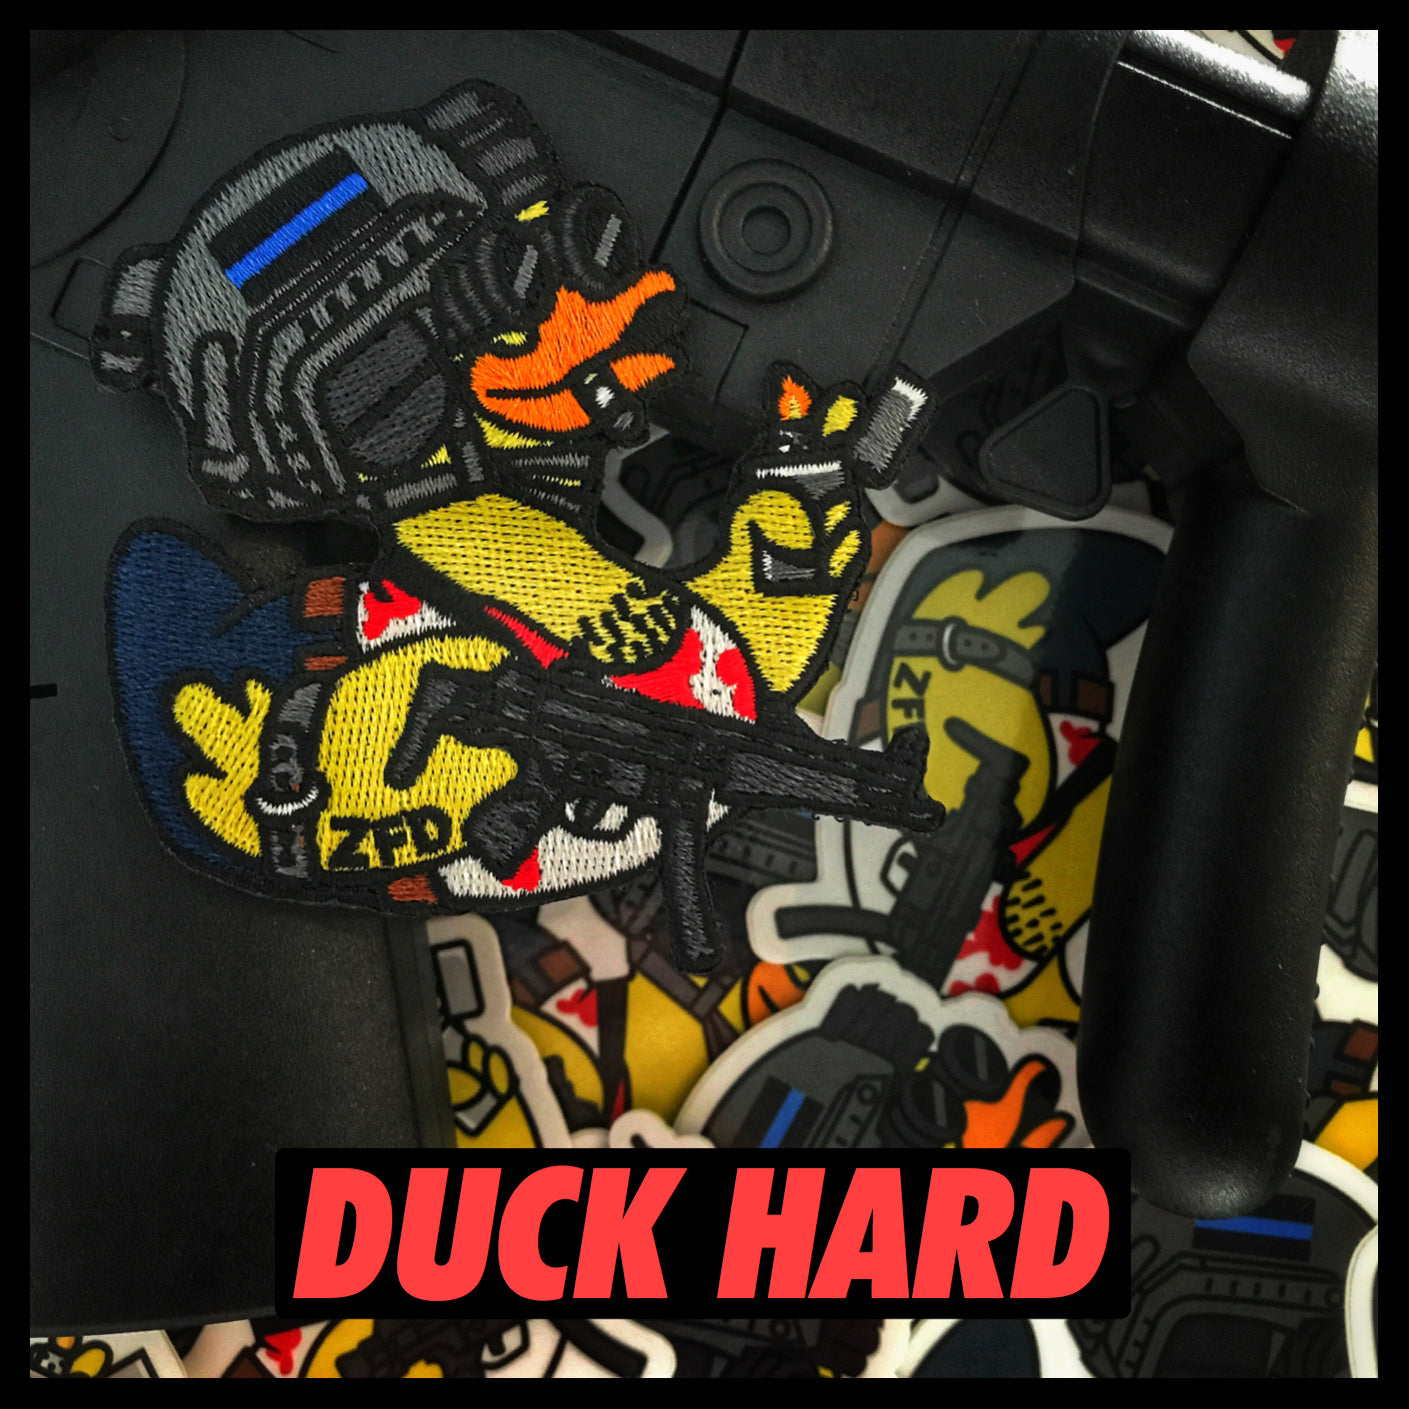 Zero Fucks Duck 'DUCK HARD: The Morale Patch Series